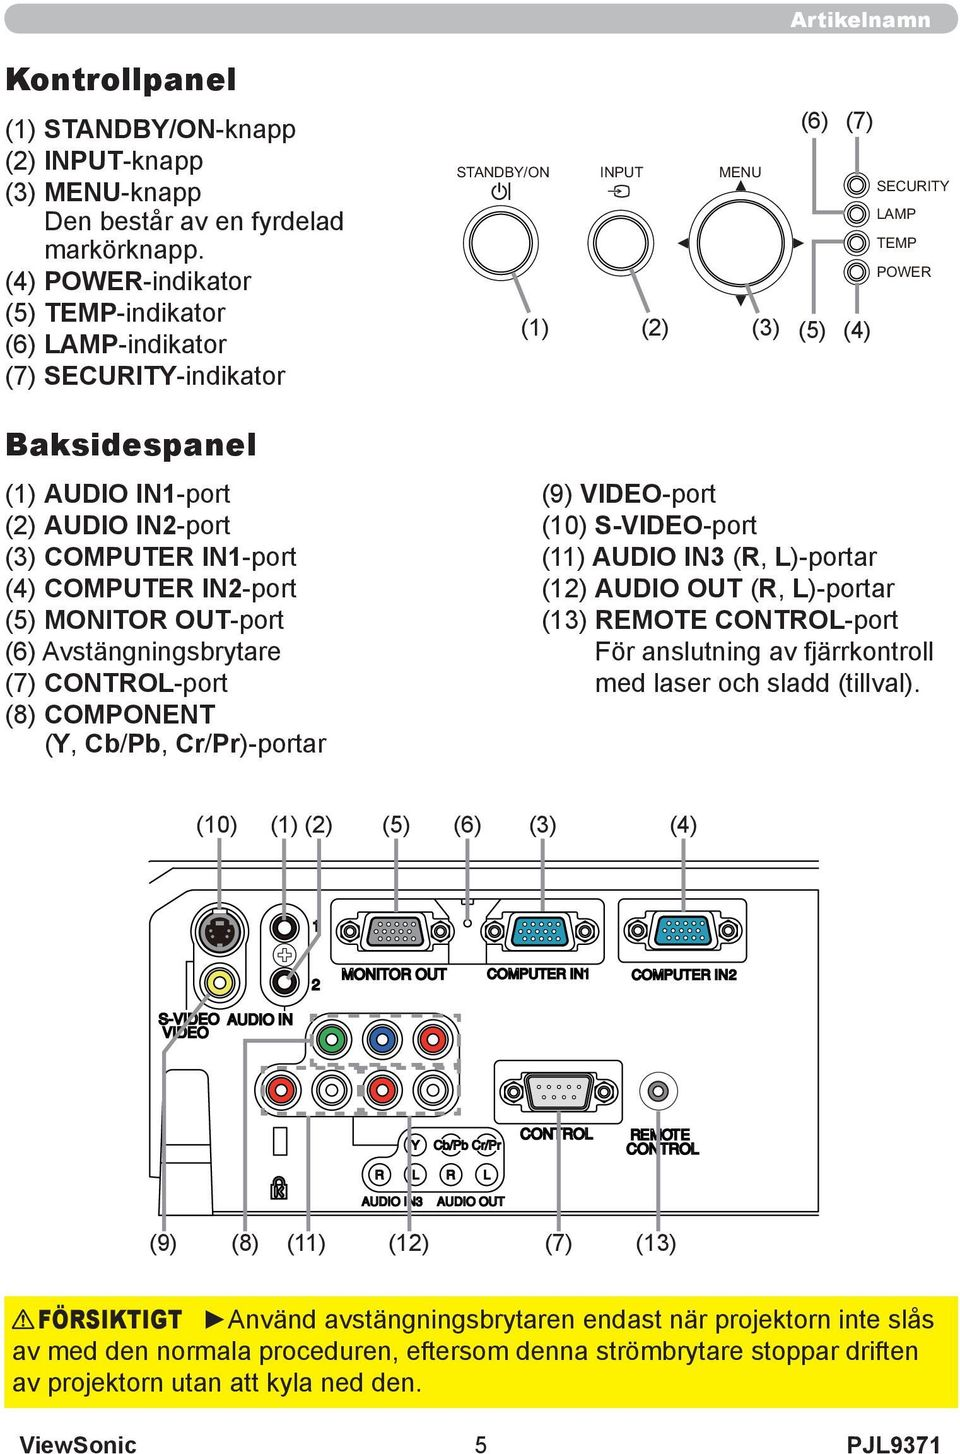 (6) Avstängningsbrytare (7) CONTROL-port (8) COMPONENT (Y, Cb/Pb, Cr/Pr)-portar STANDBY/ON INPUT MENU (6) (7) (1) (2) (3) (5) (4) SECURITY LAMP TEMP POWER (9) VIDEO-port (10) S-VIDEO-port (11) AUDIO